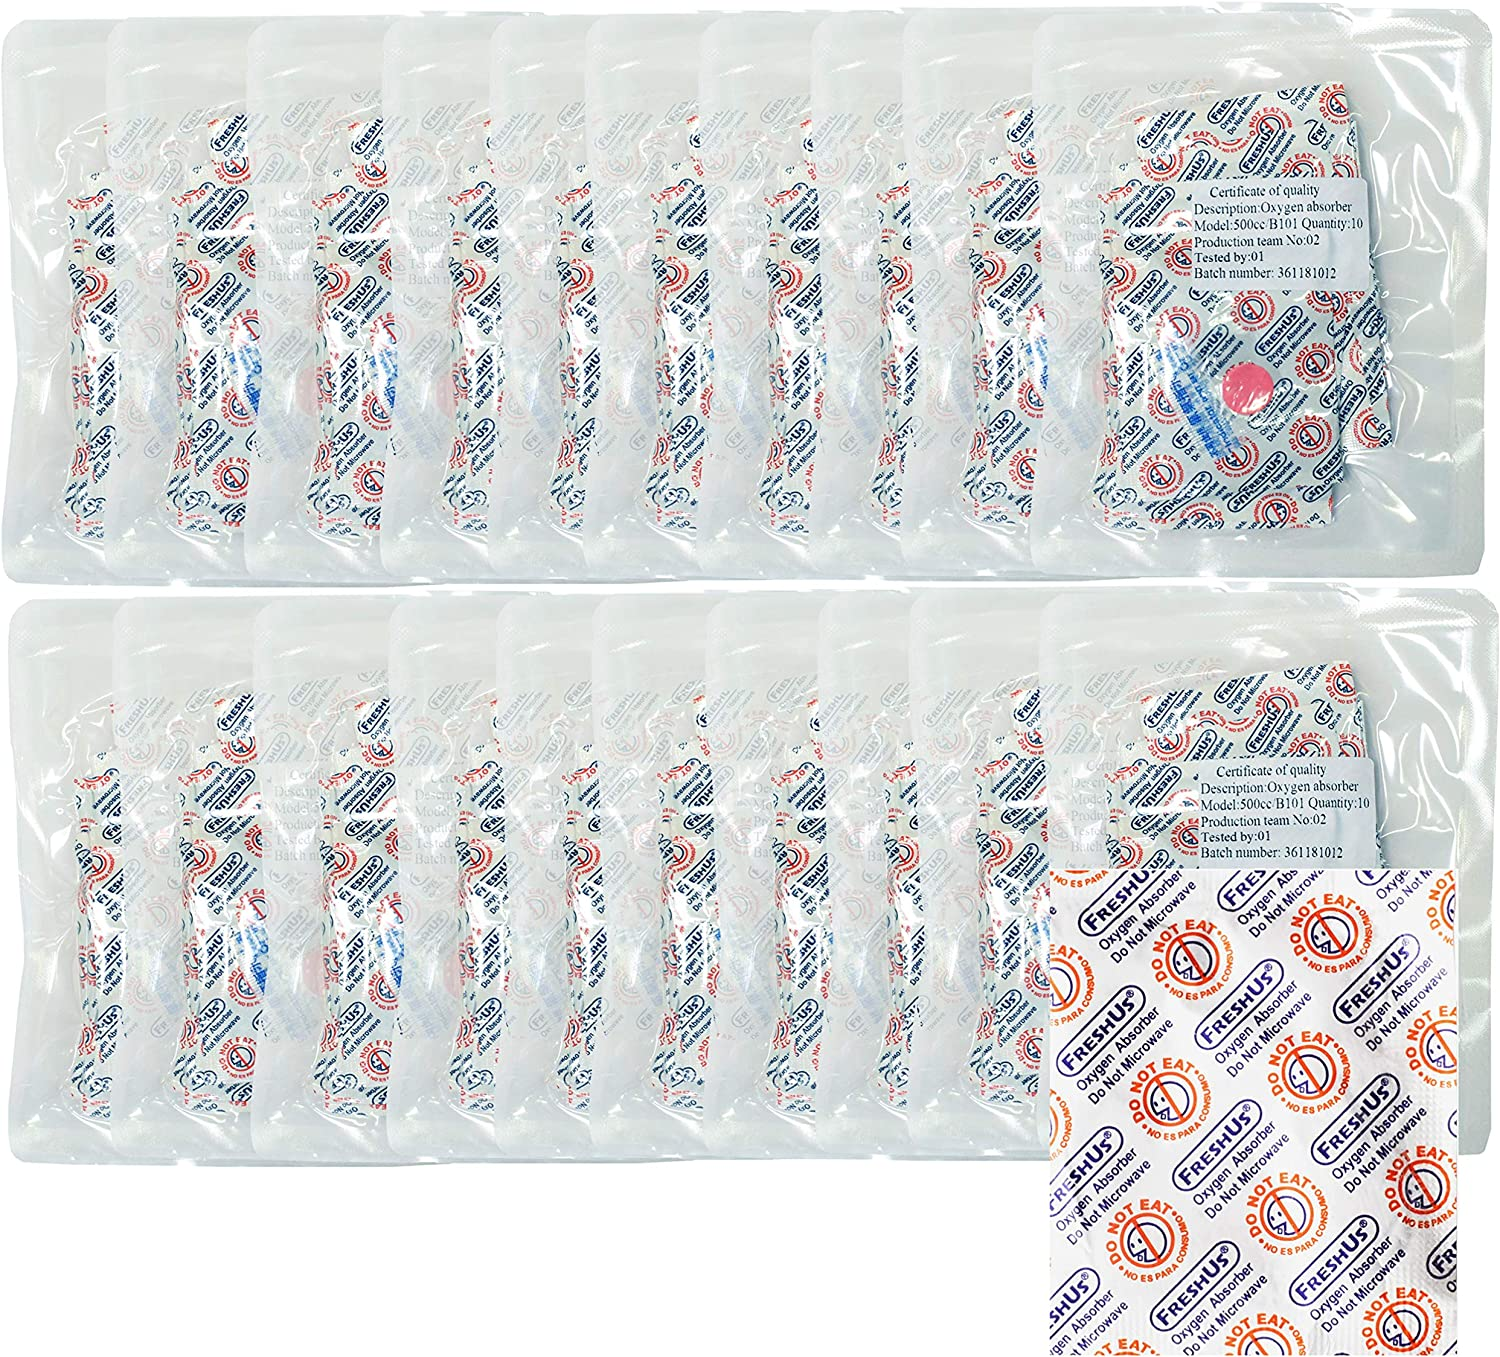 FreshUS 500cc Oxygen Absorber(20 Individual Packs of 10 Packet, Total 200 Packets) - Long Term Food Storage (200, 500 CC)